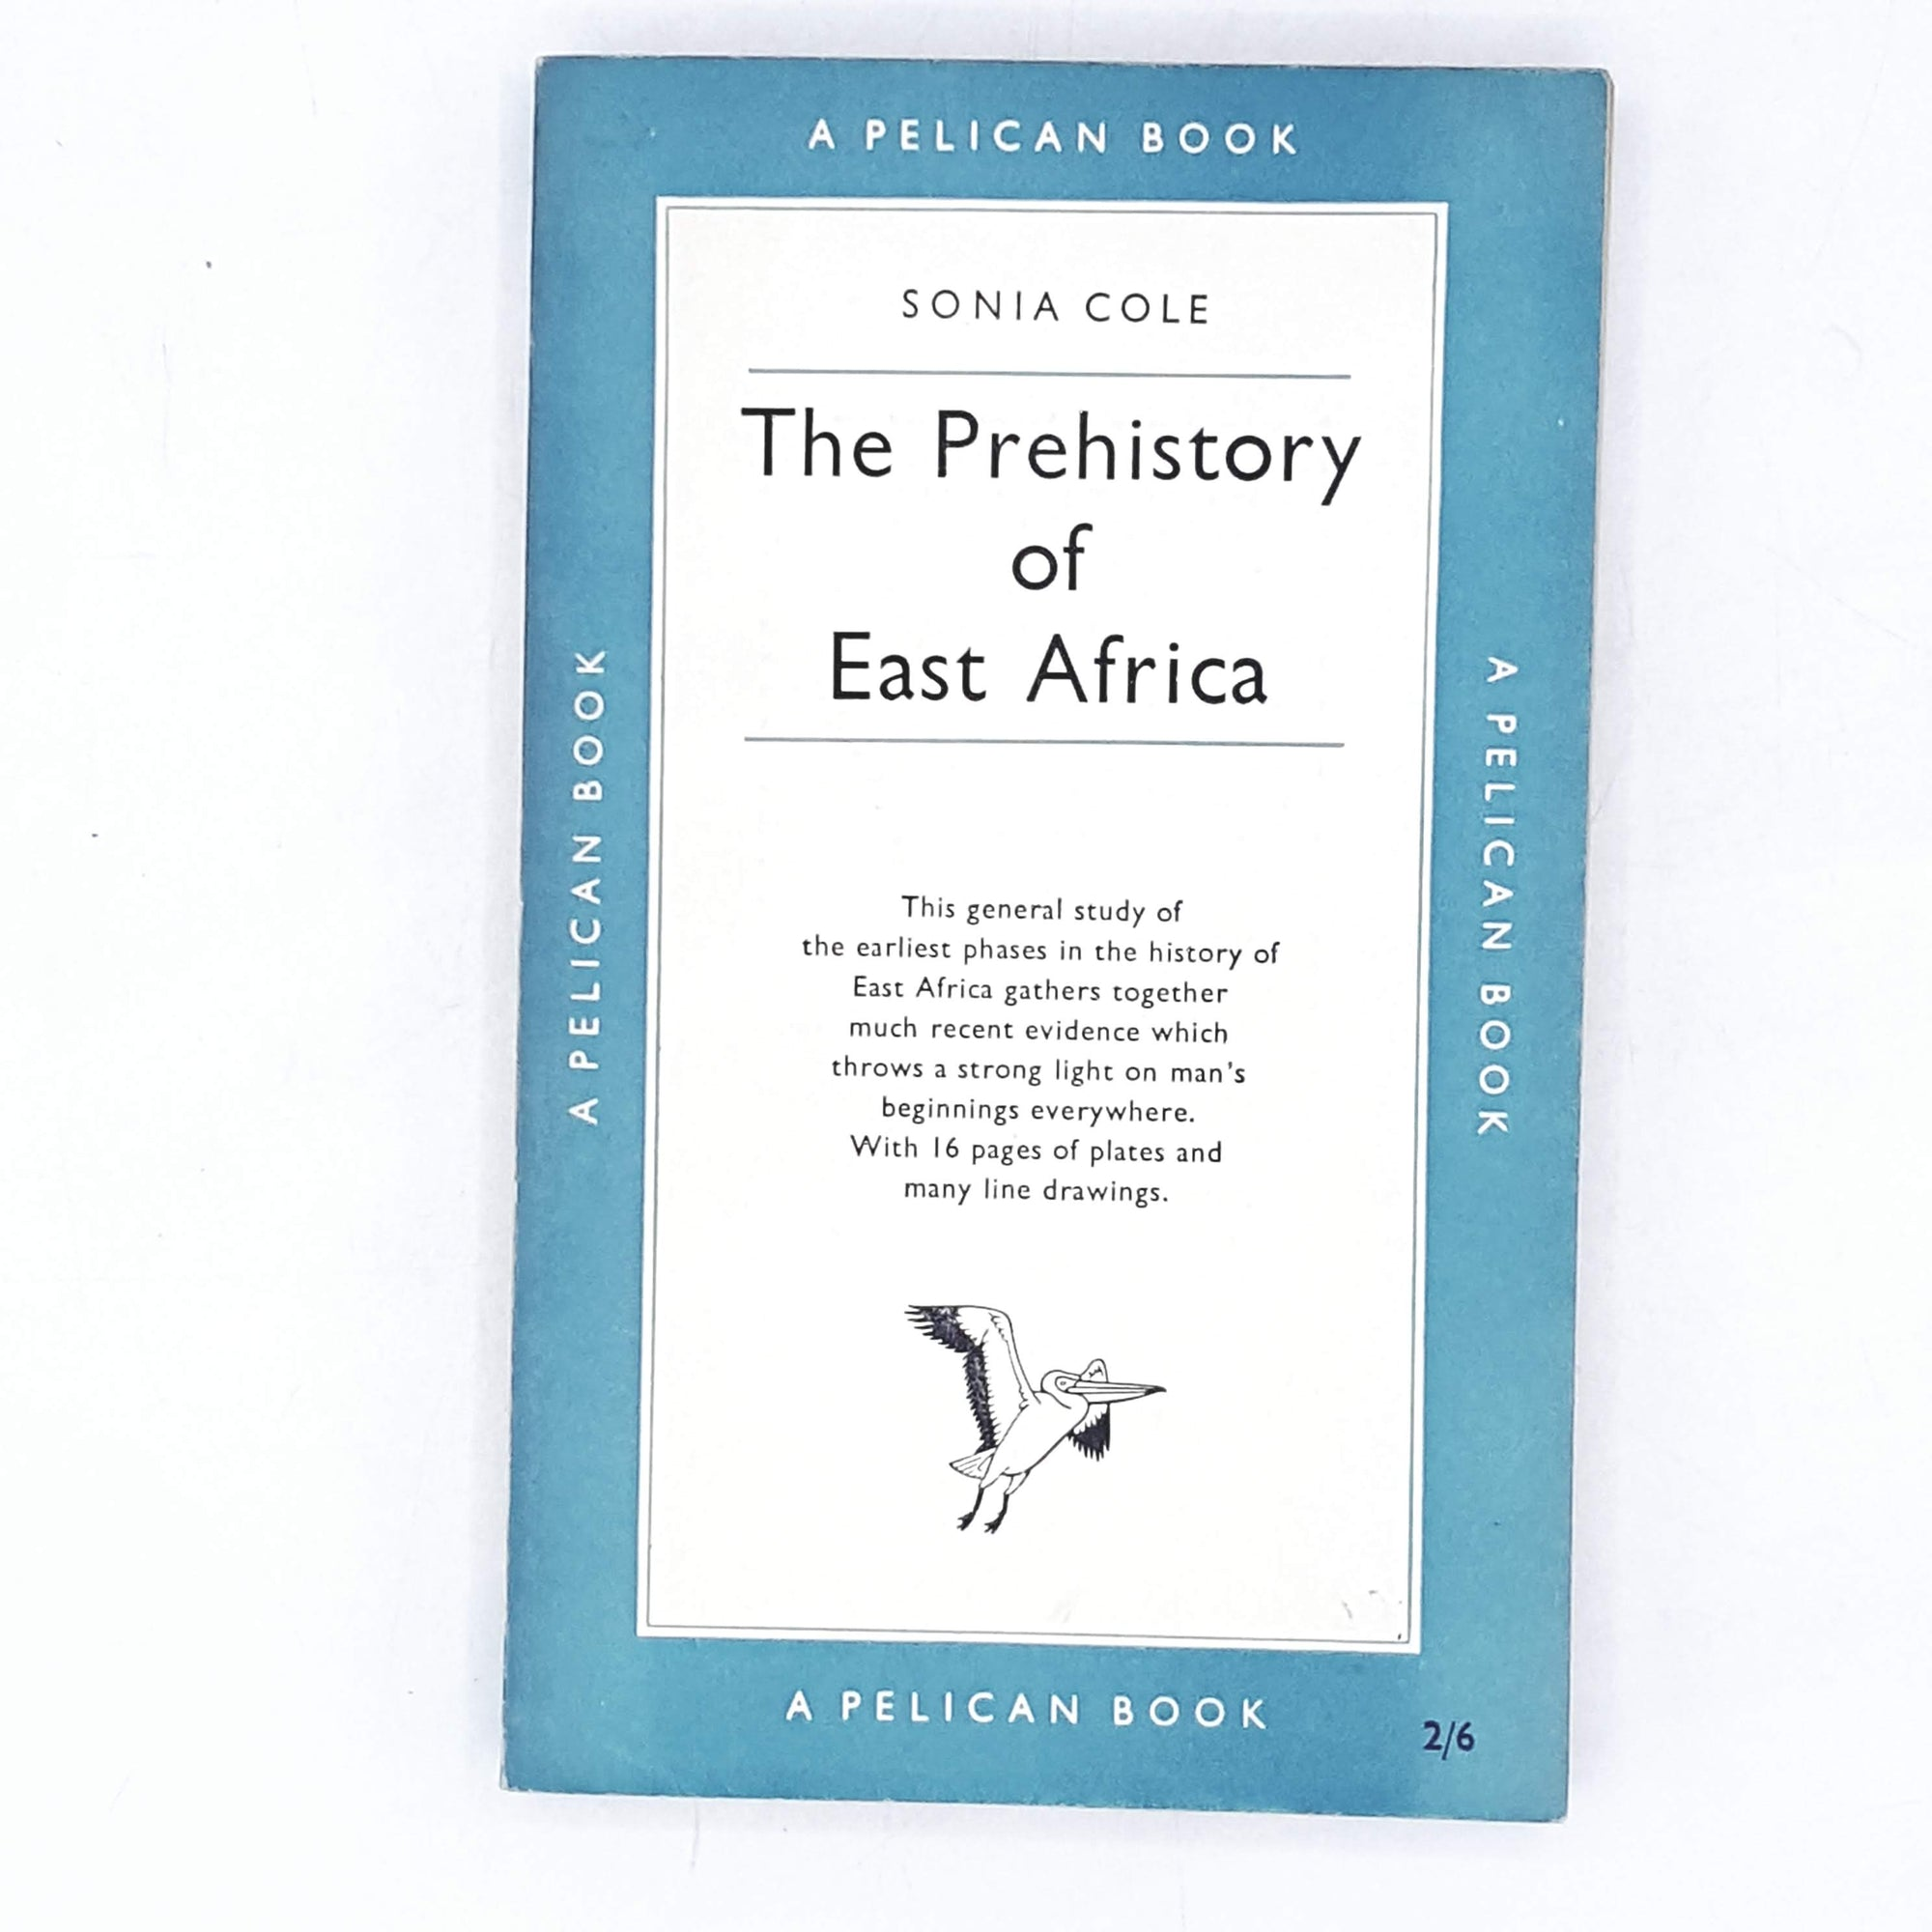 vintage-pelican-the-prehistory-of-east-africa-by-sonia-cole-1954-pale-blue-country-house-library